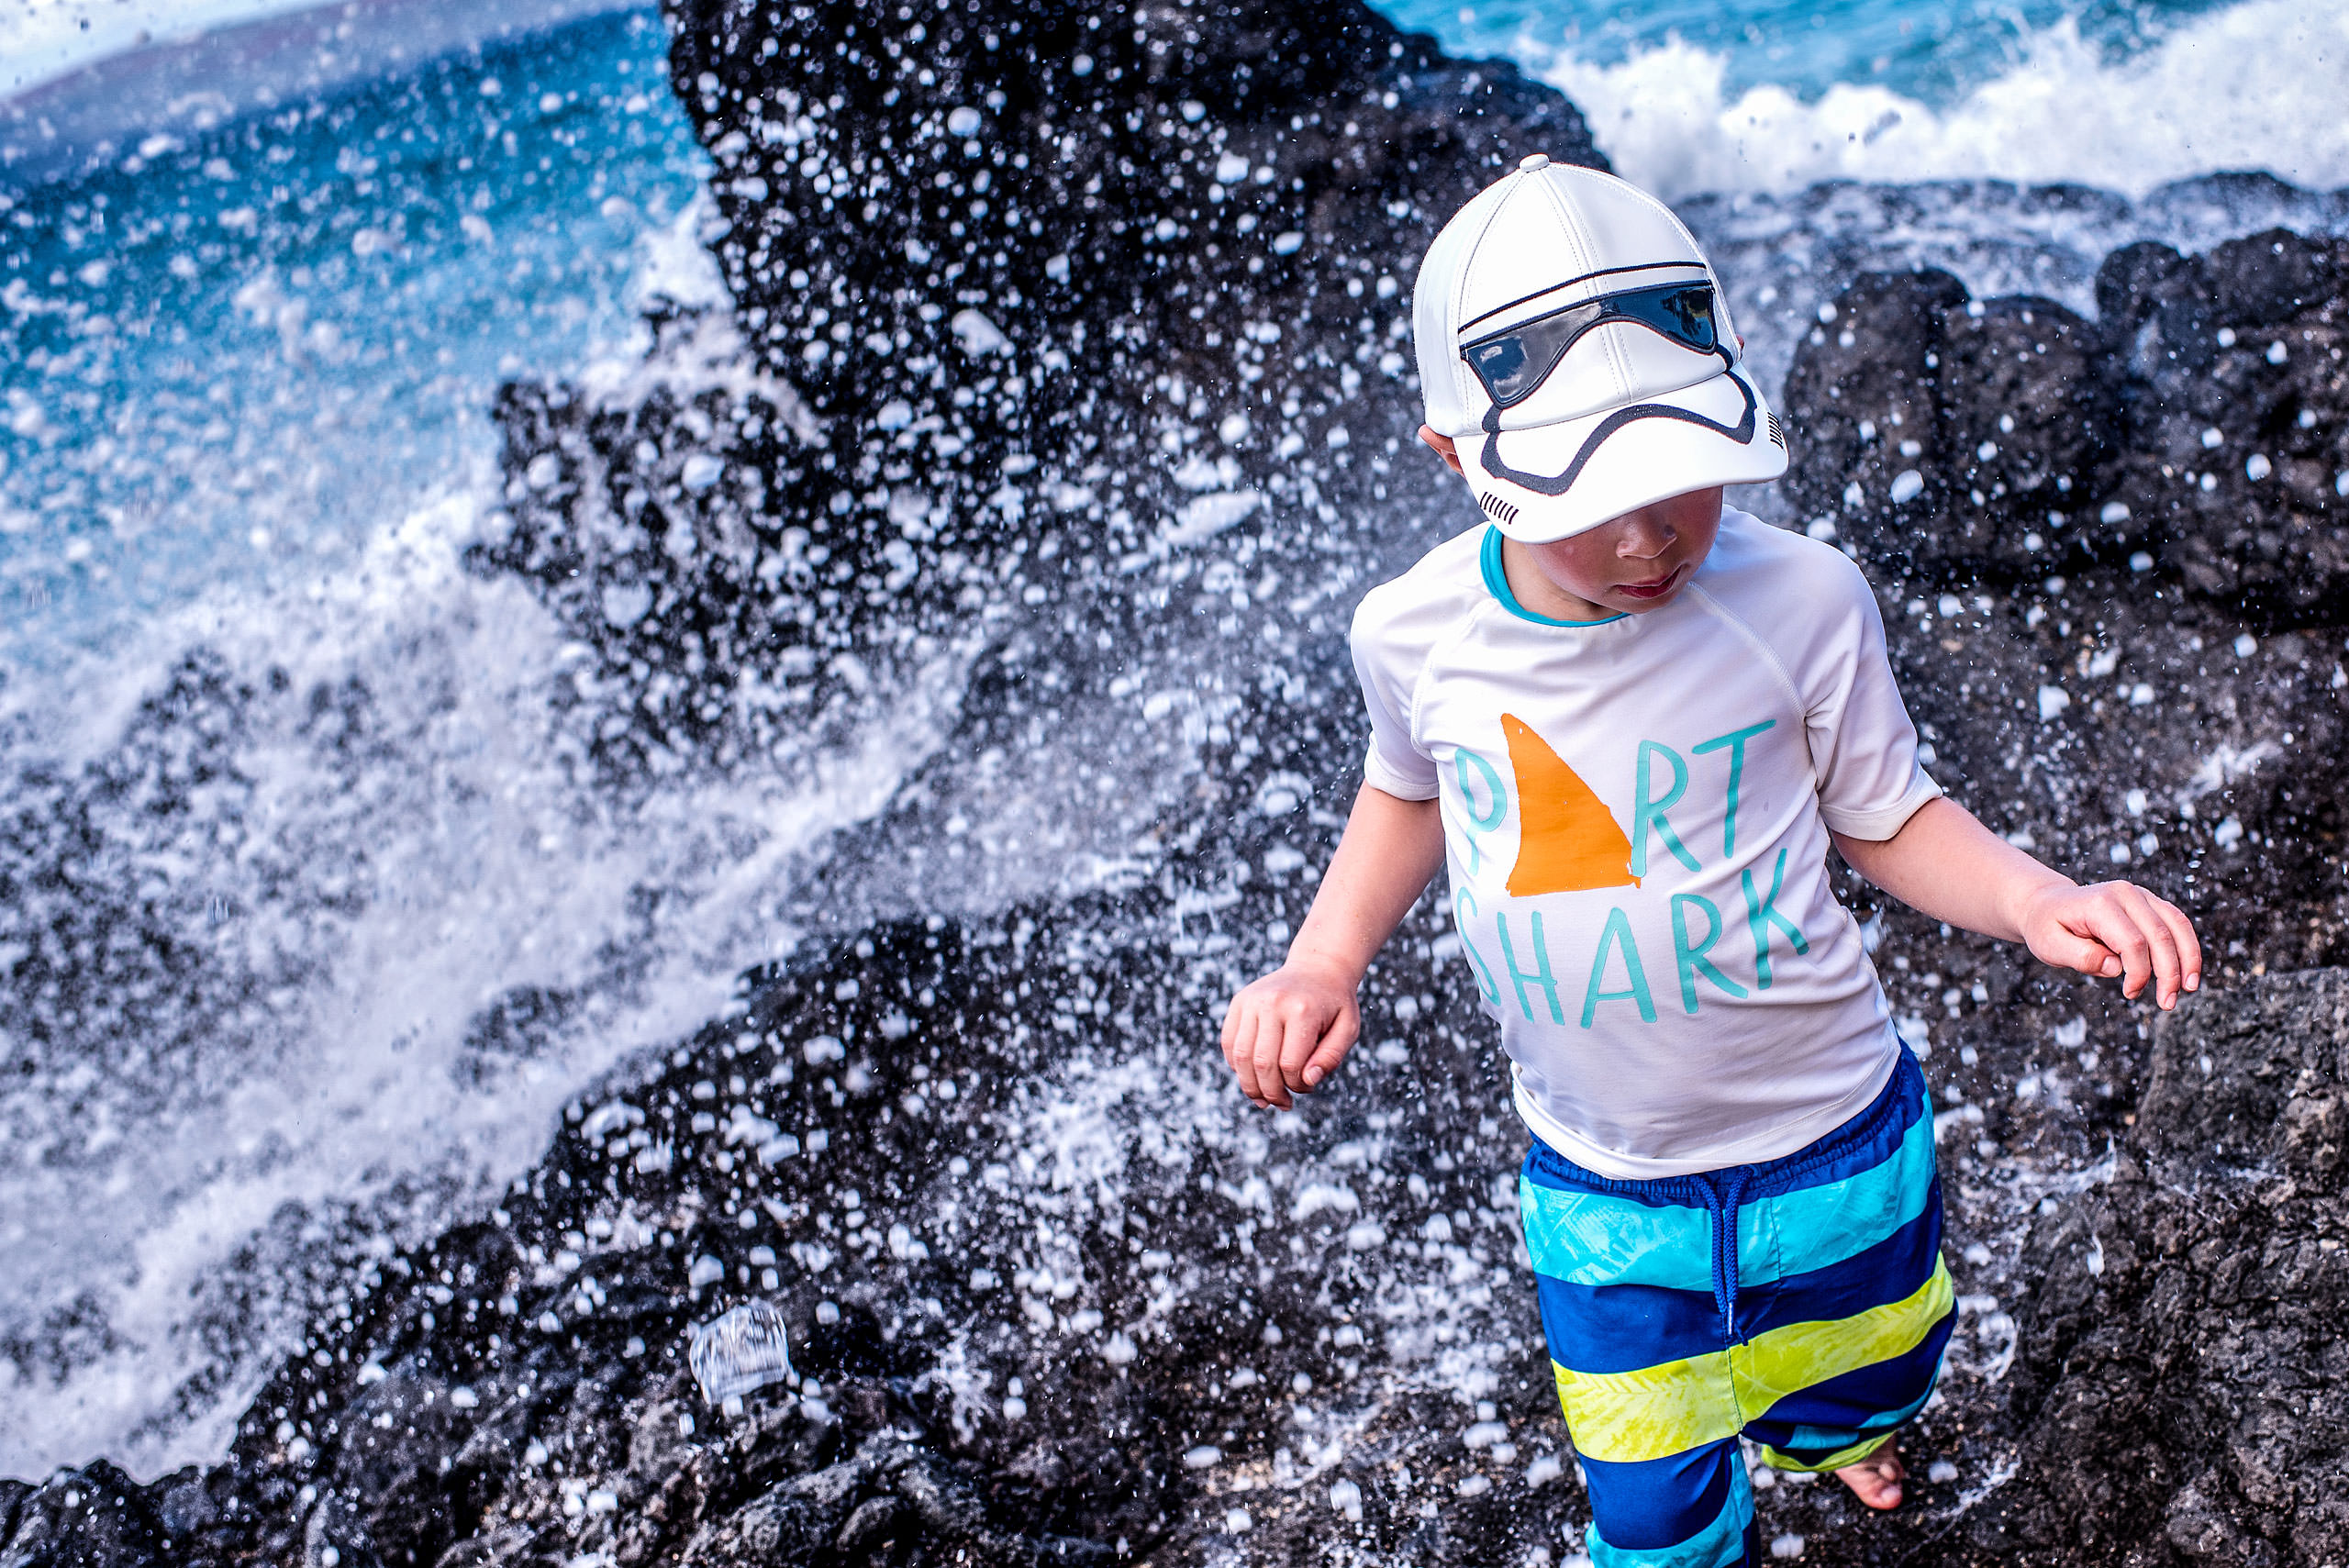 a young boy being splashed by water by destination family photographers sean leblanc